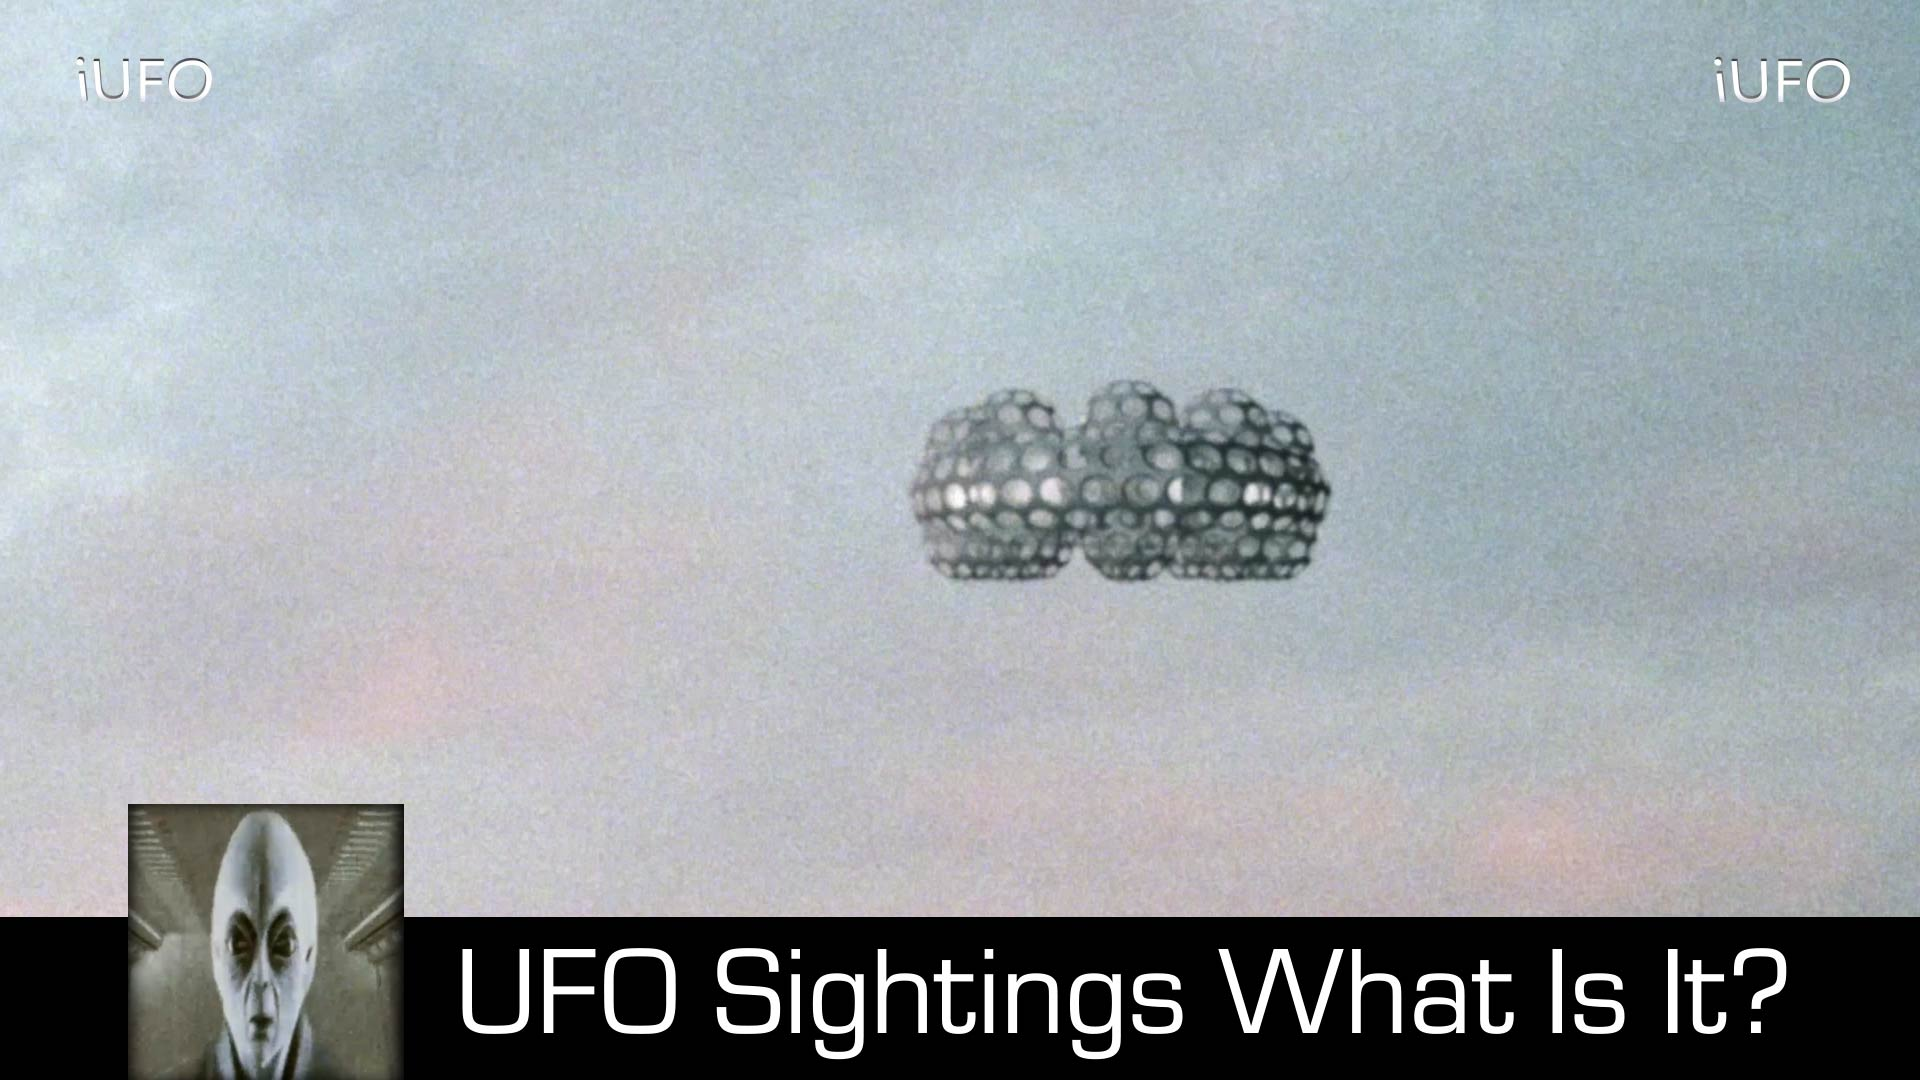 UFO Sightings What Is It November 30th 2017